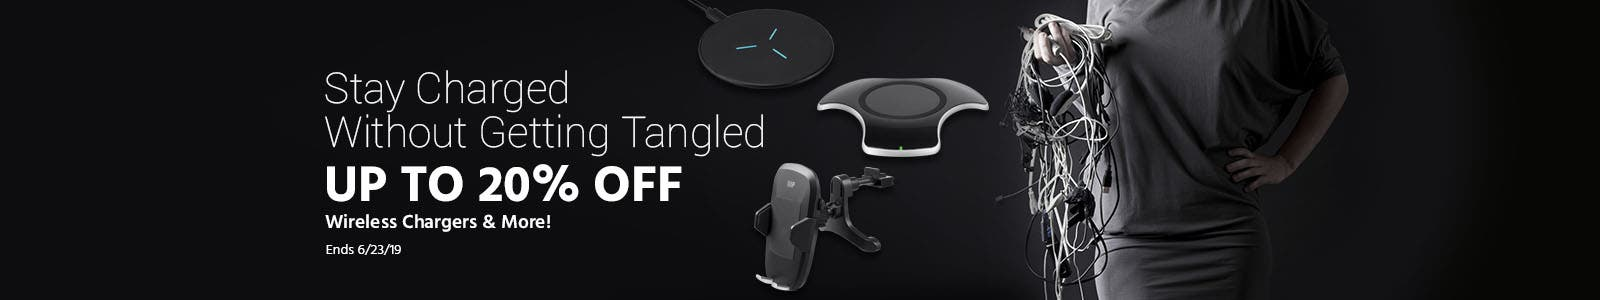 Stay Charged without getting tangled. up to 20% off wireless chargers & more